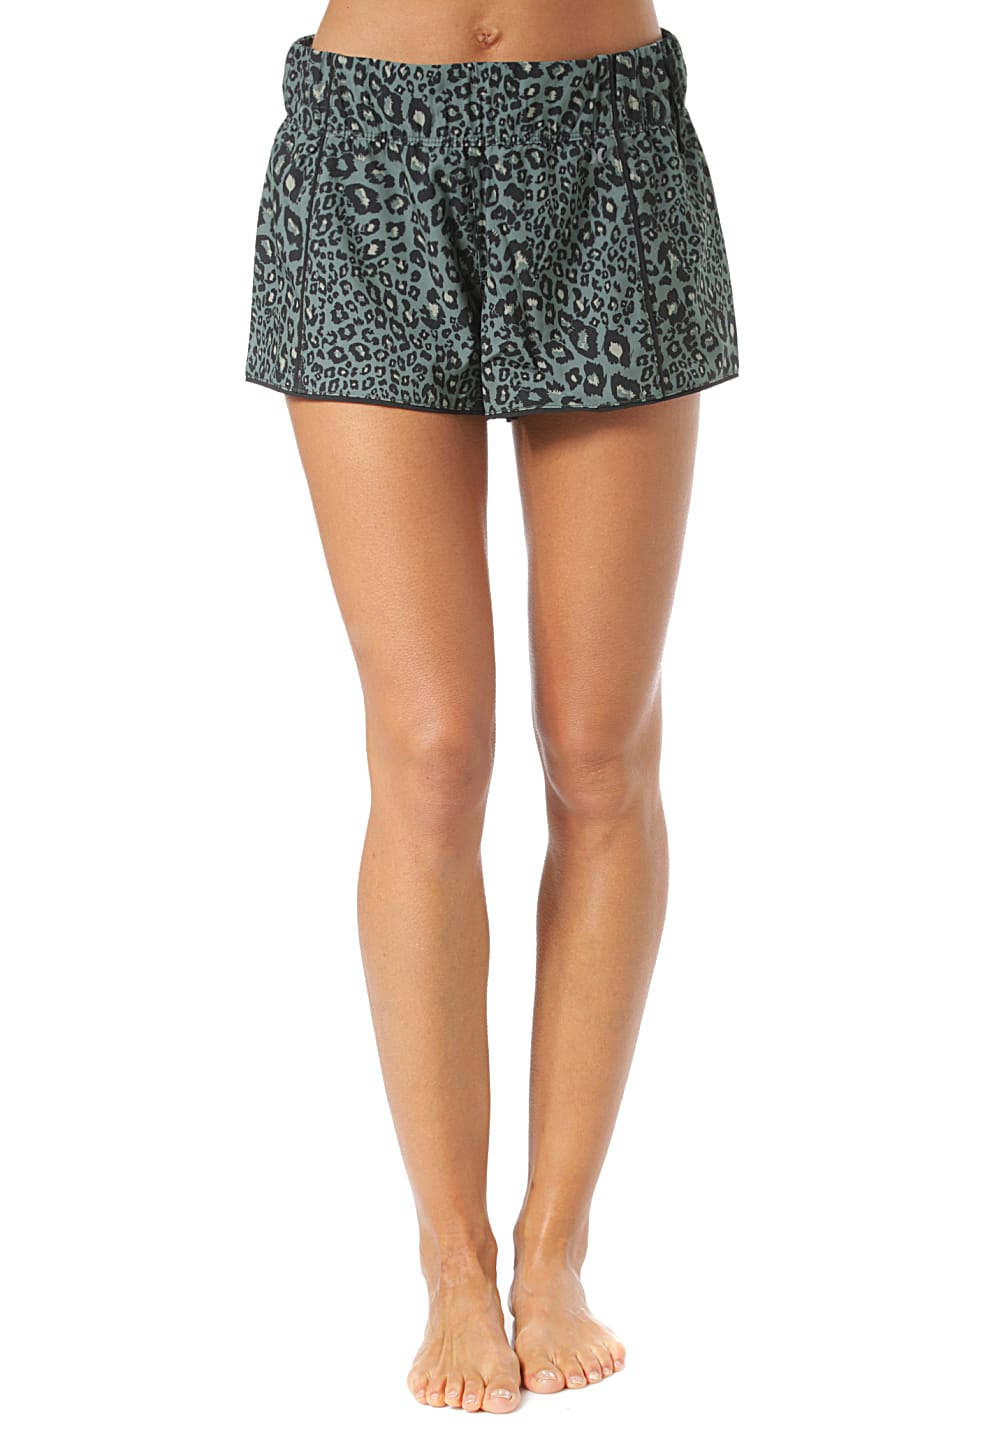 Bademode - Hurley Phantom Waverider Leopard Boardshorts für Damen Grün  - Onlineshop Planet Sports